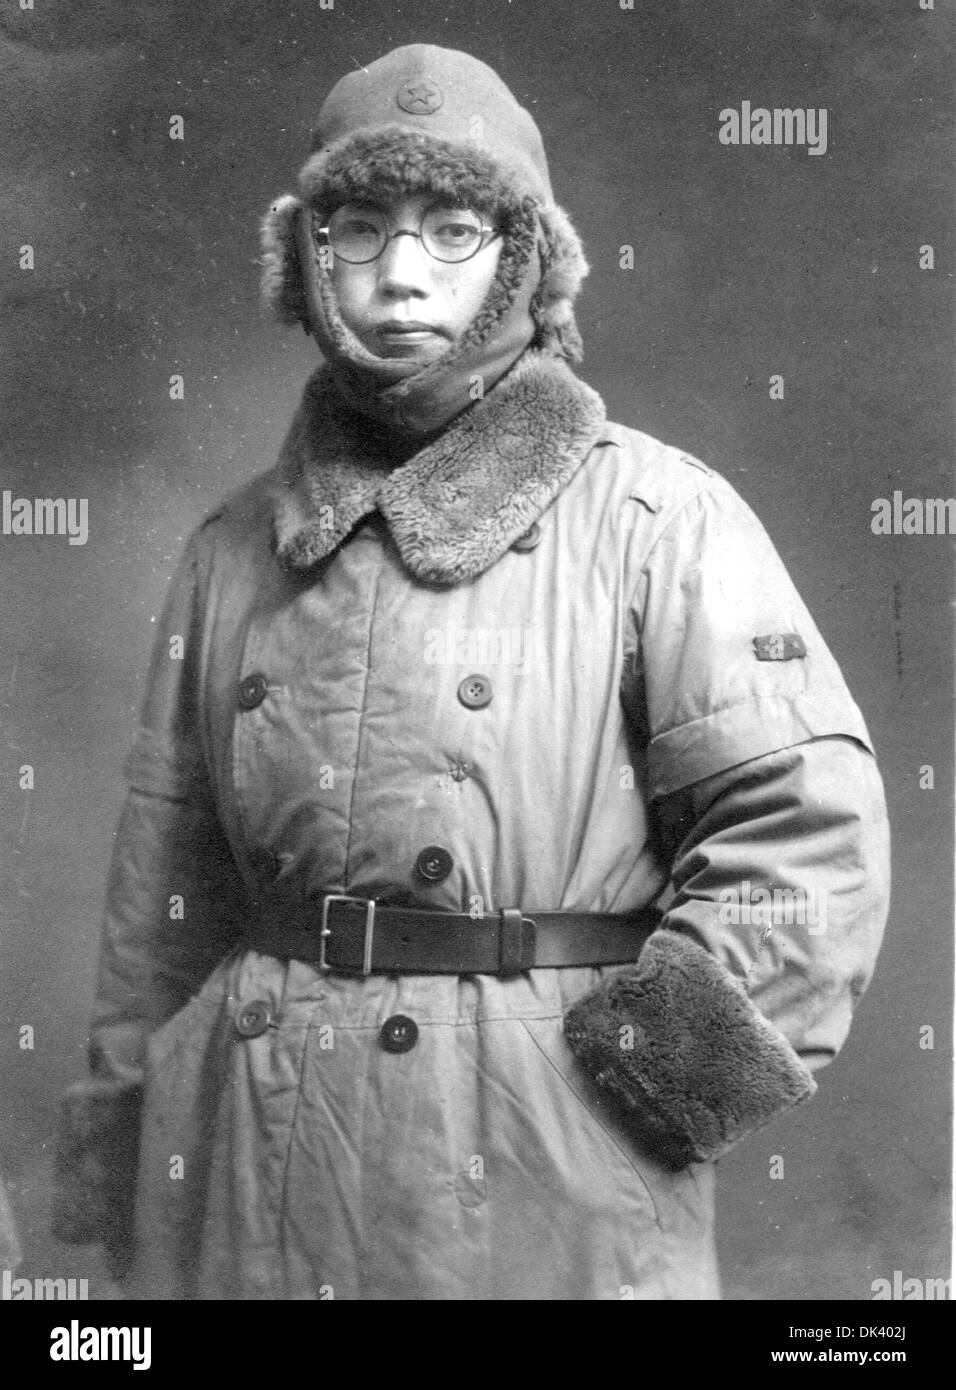 Japanese soldier serving in Manchuria wearing cold weather clothing - Stock Image